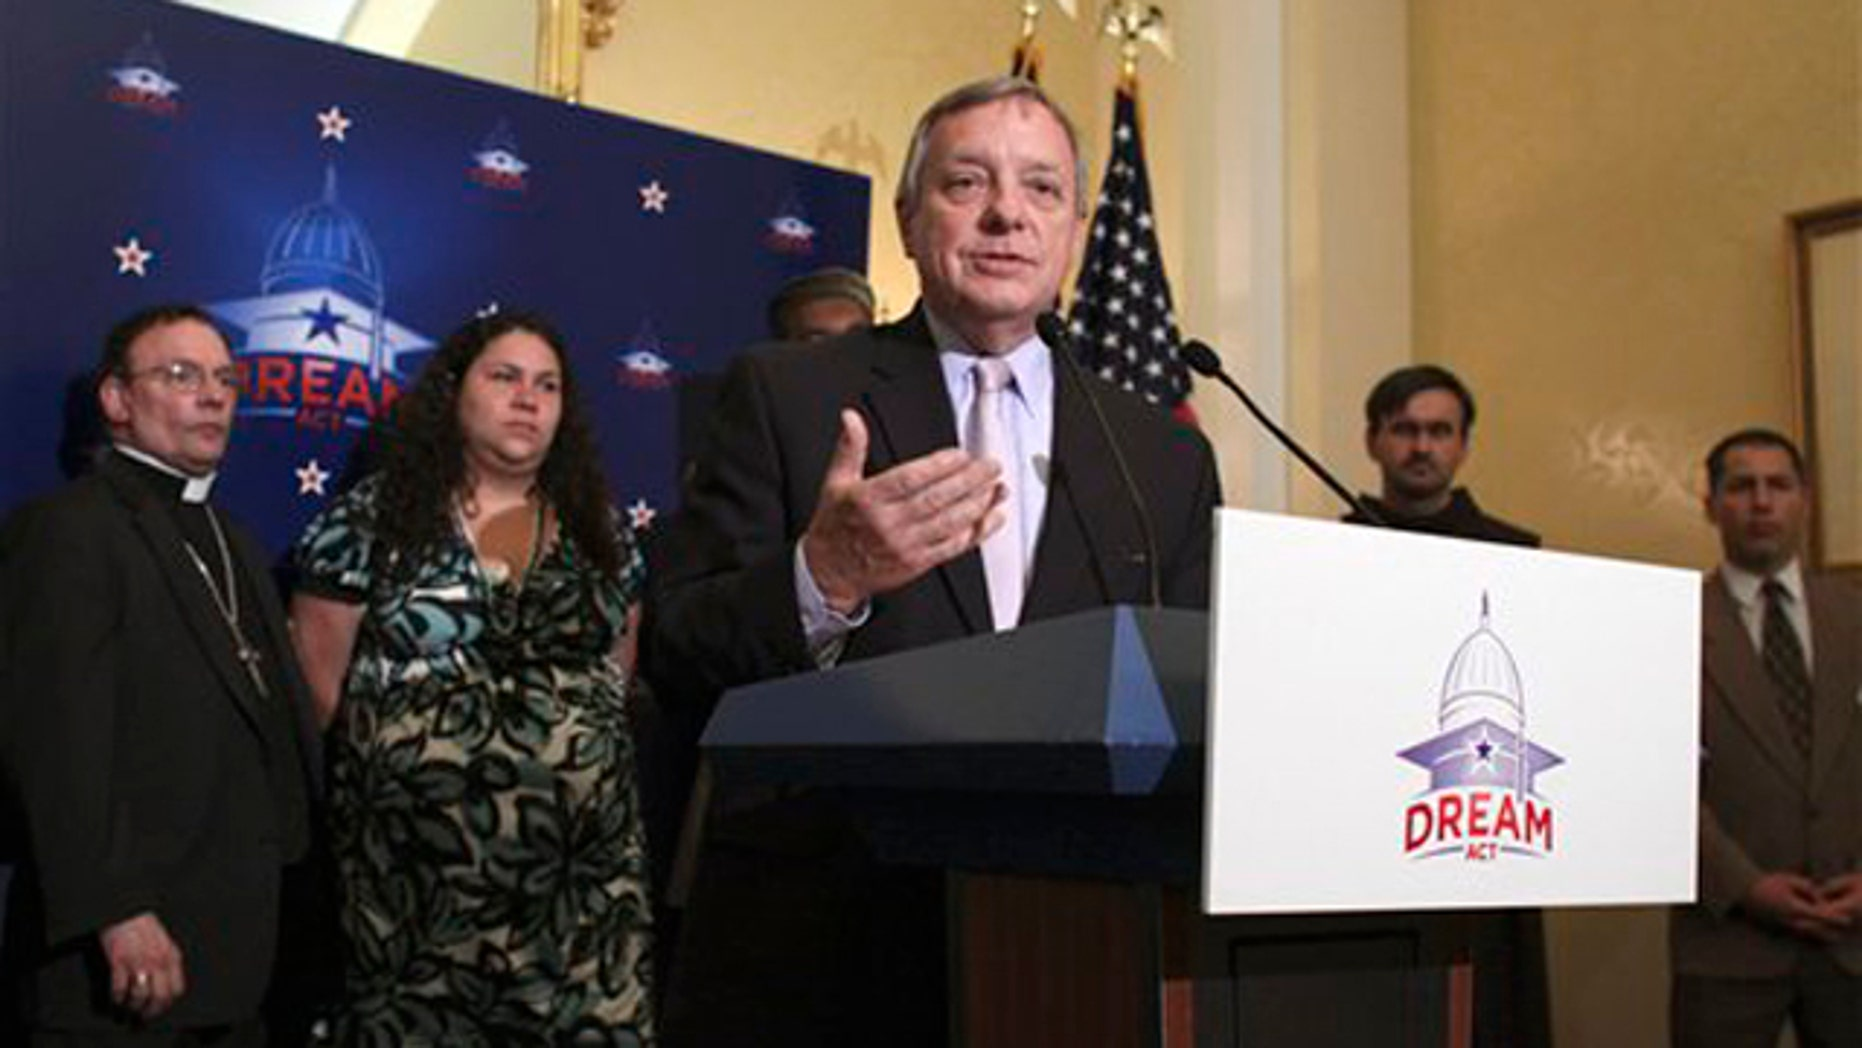 Sen. Dick Durbin, at podium, joined by religious leaders, gestures during a news conference on Capitol Hill July 12 to discuss the upcoming 'DREAM Act Sabbath.'